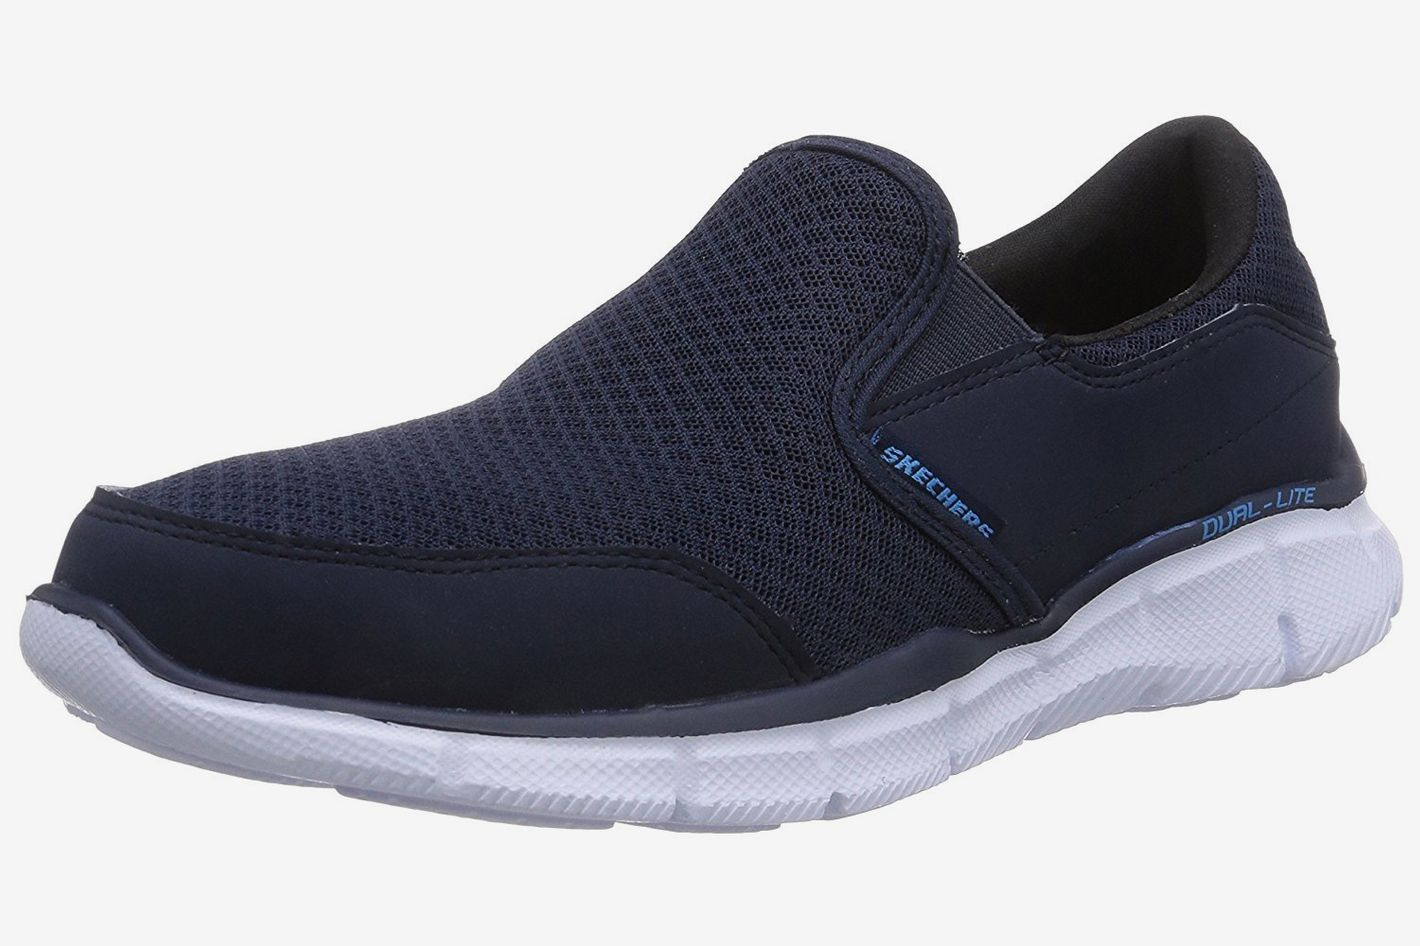 Skechers Equalizer Slip On Sneaker